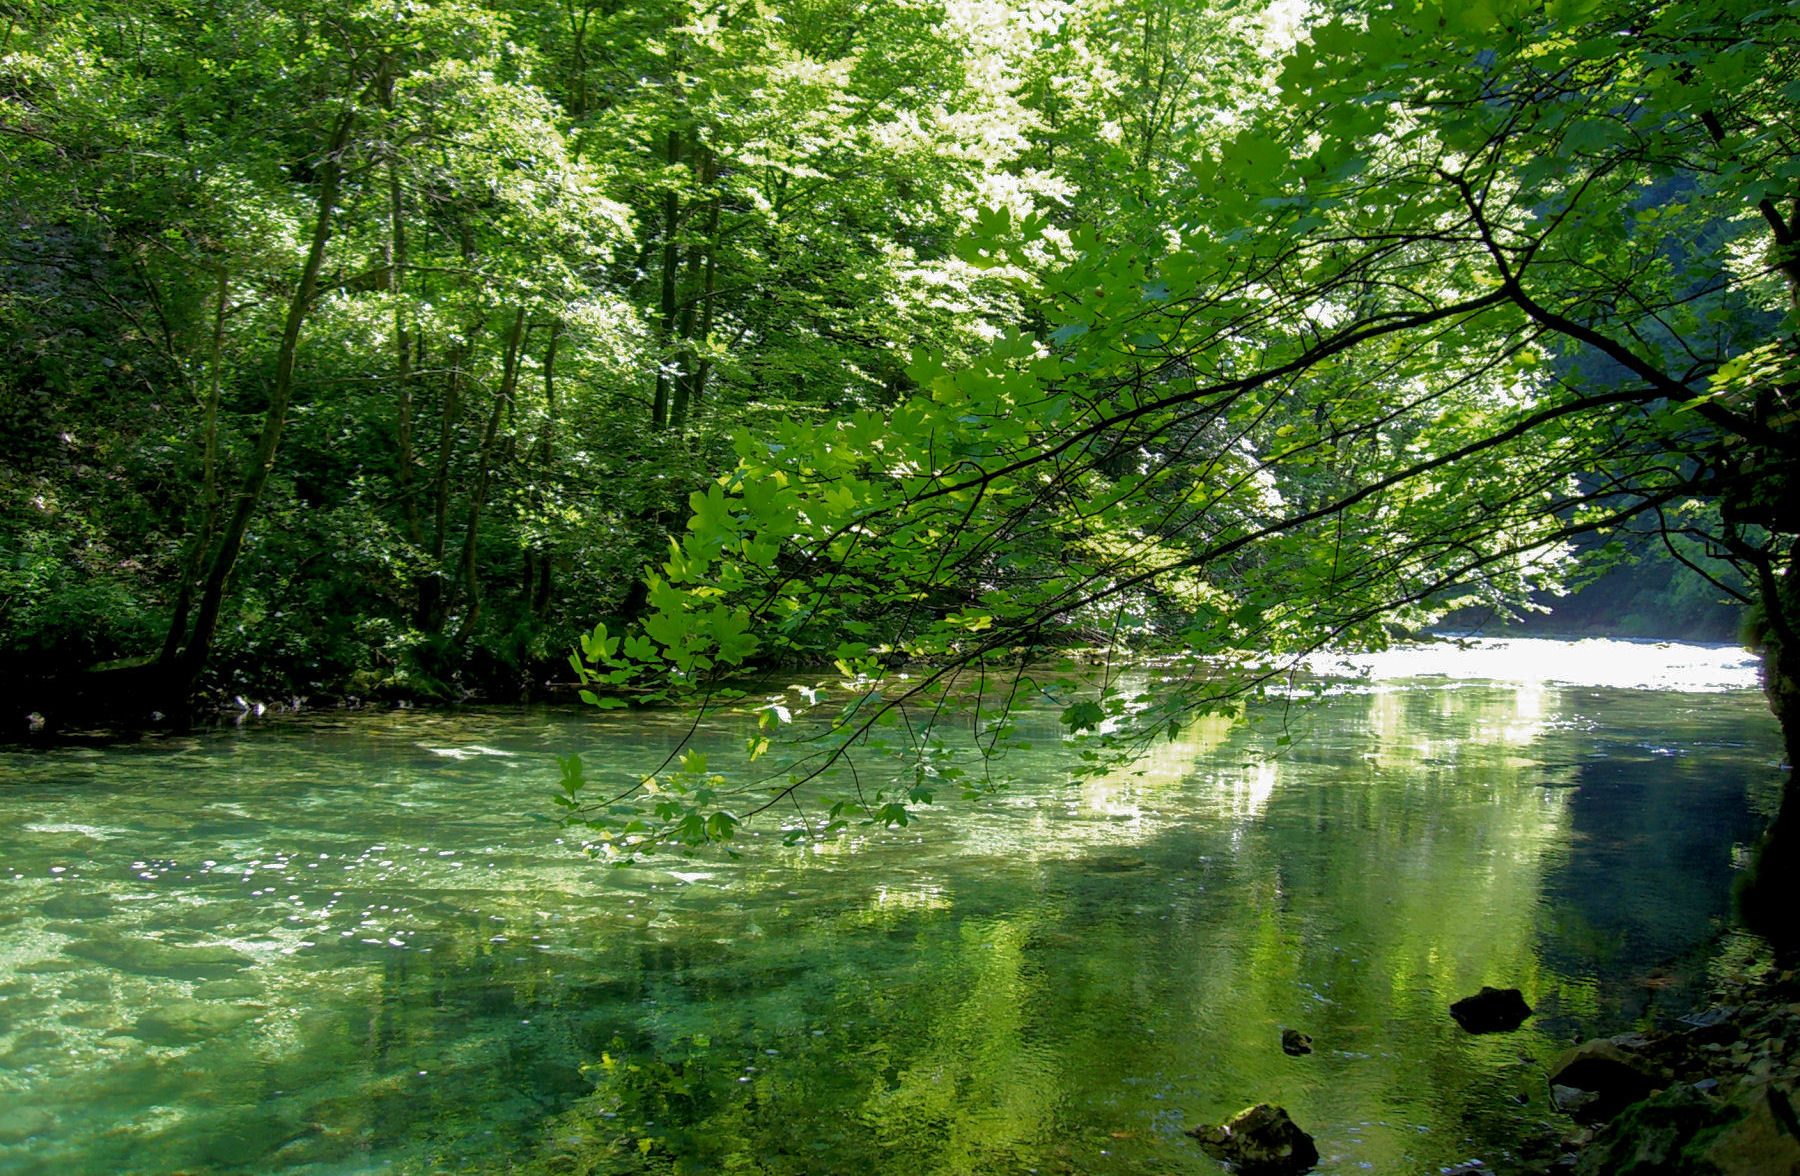 Vintgar gorge is one of the most beautiful places in Slovenia